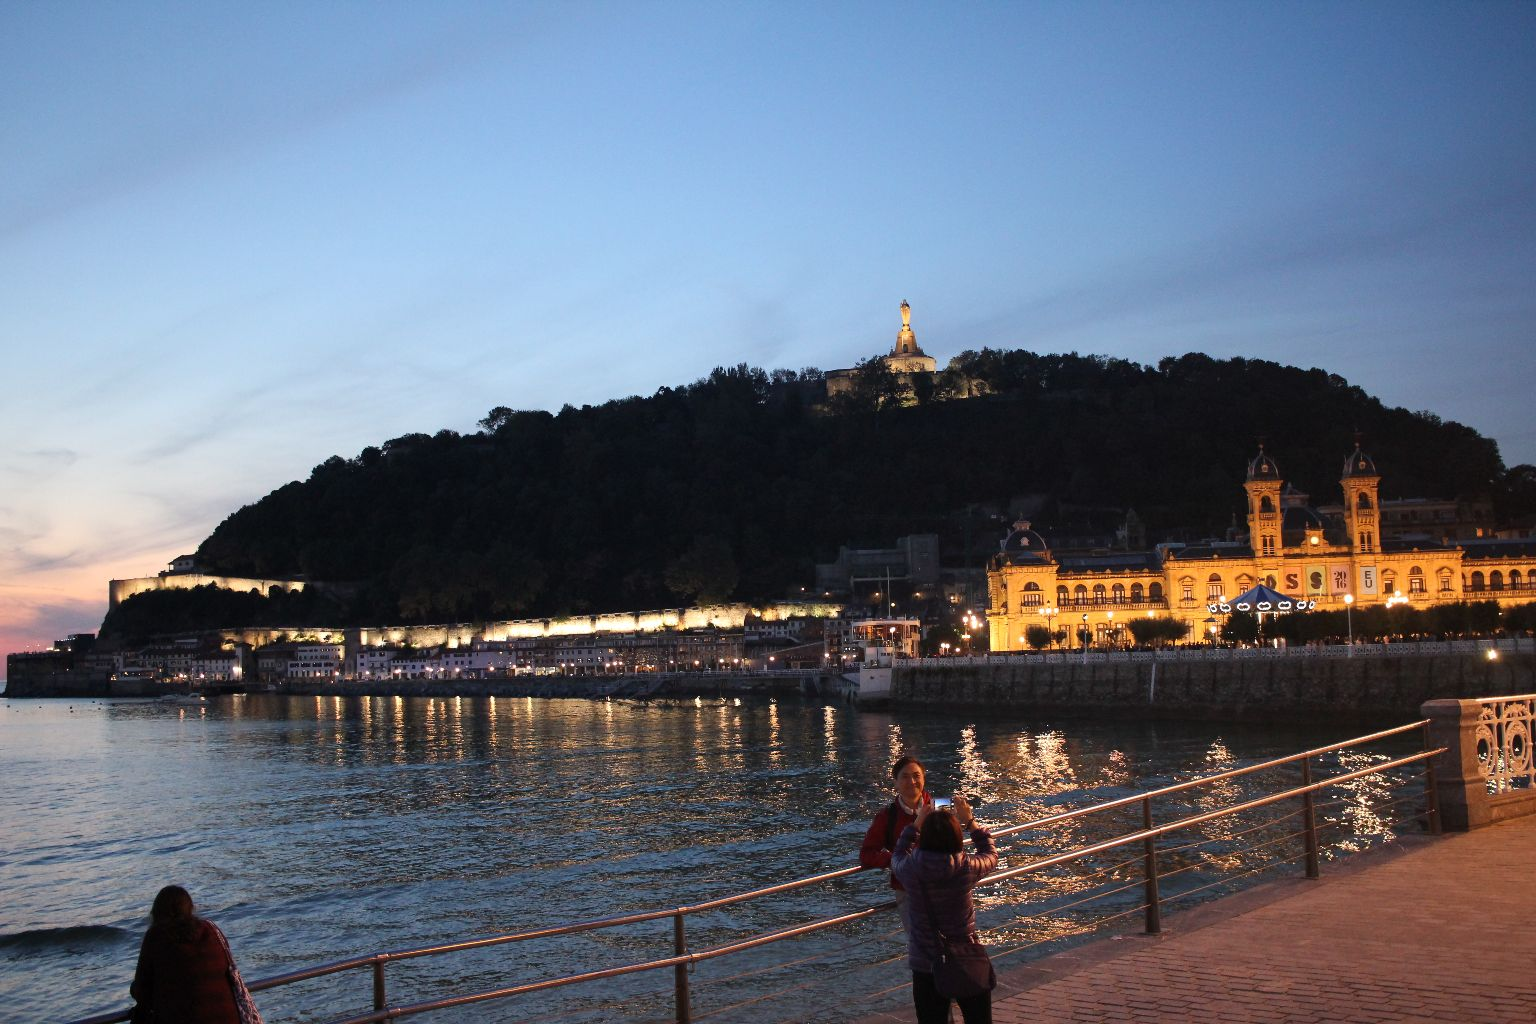 San Sebastian Launches its European Capital of Culture Year with a Series of Events